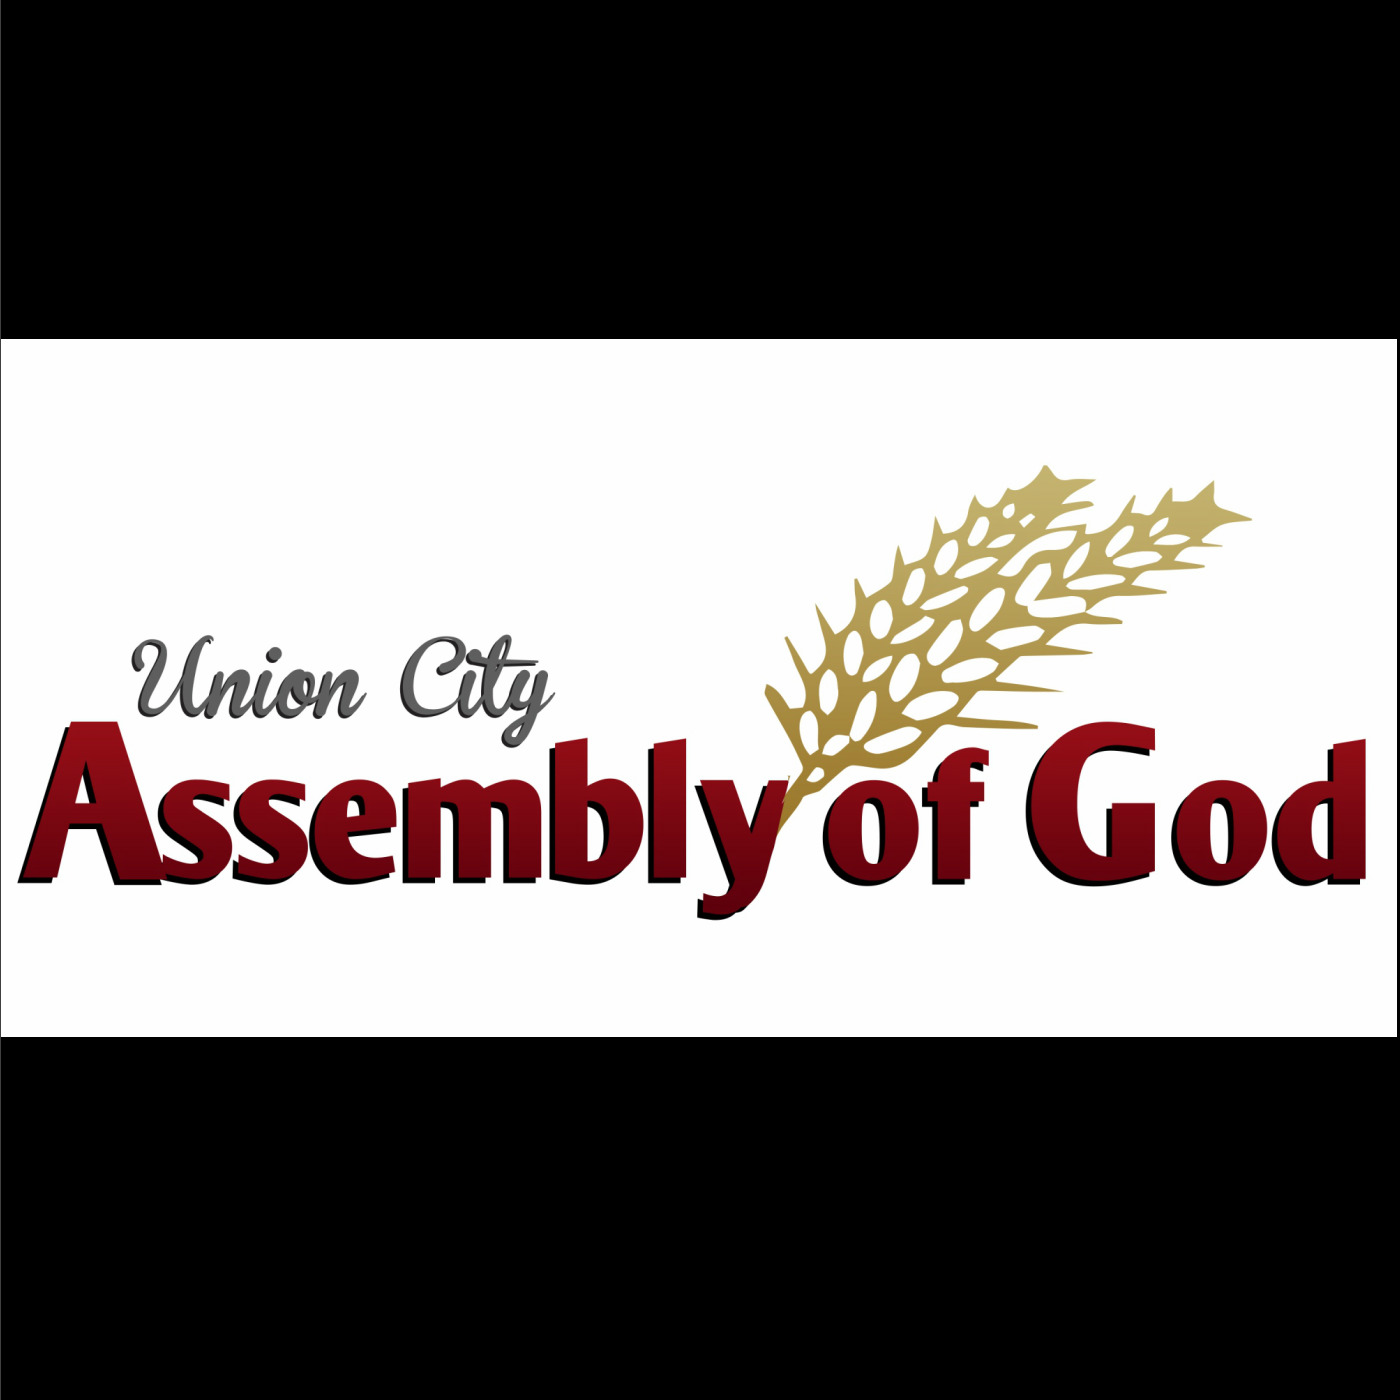 Union City Assembly of God